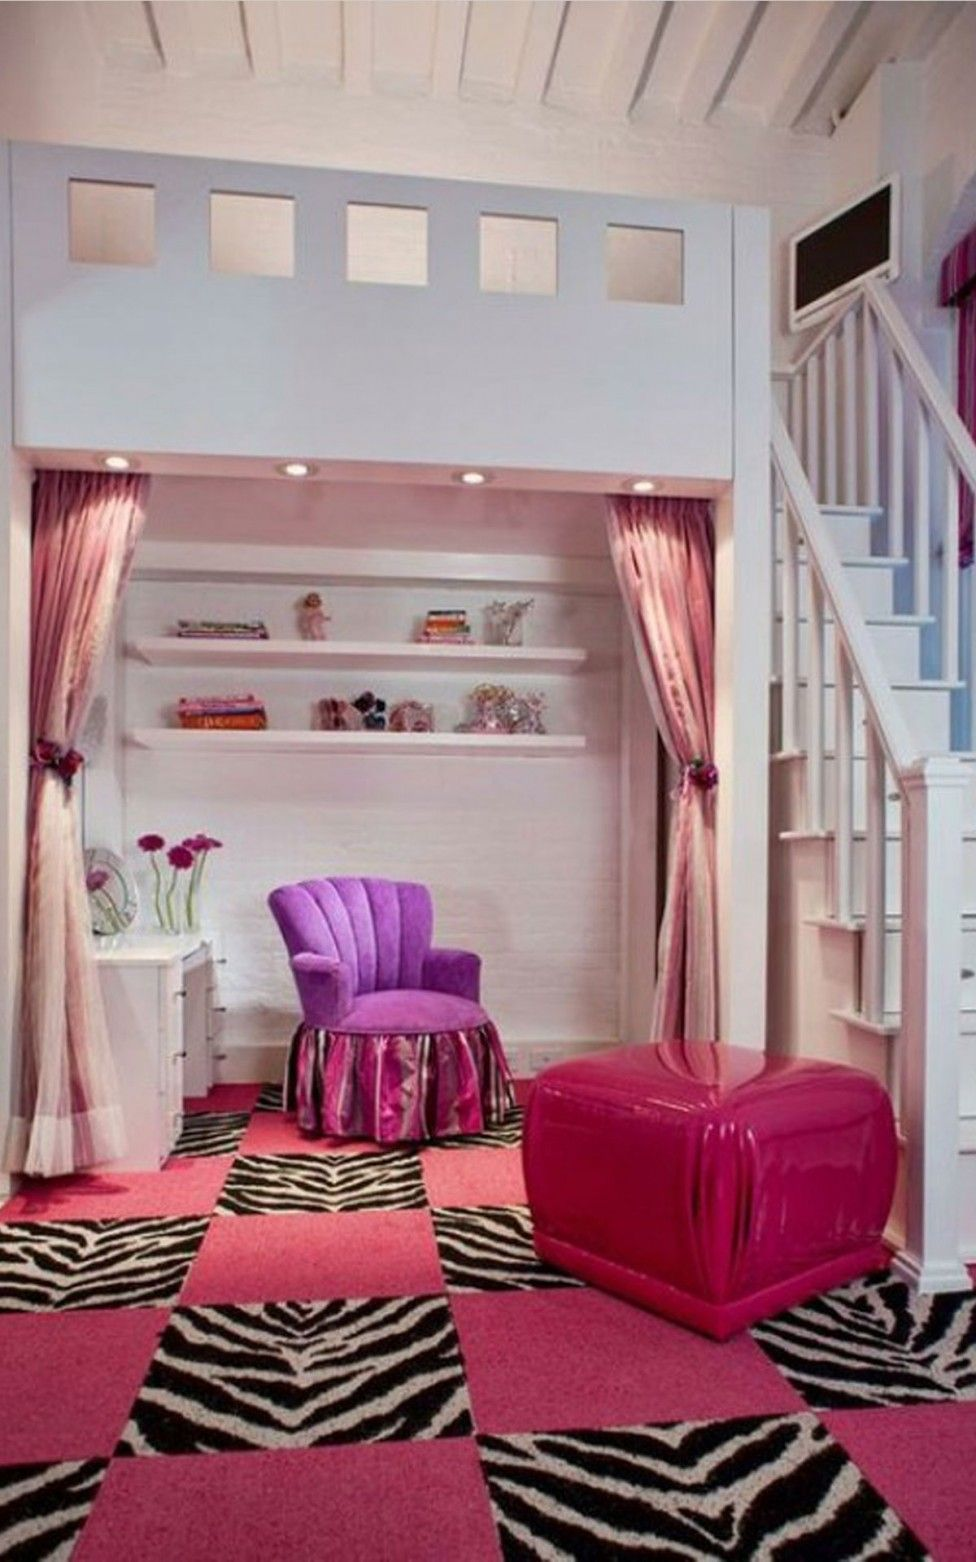 Bedroom designs ideas for teenage girls - Small Room Ideas For Girls With Cute Color Bedroom 22 Pretty Girls Room Design Room Layouts